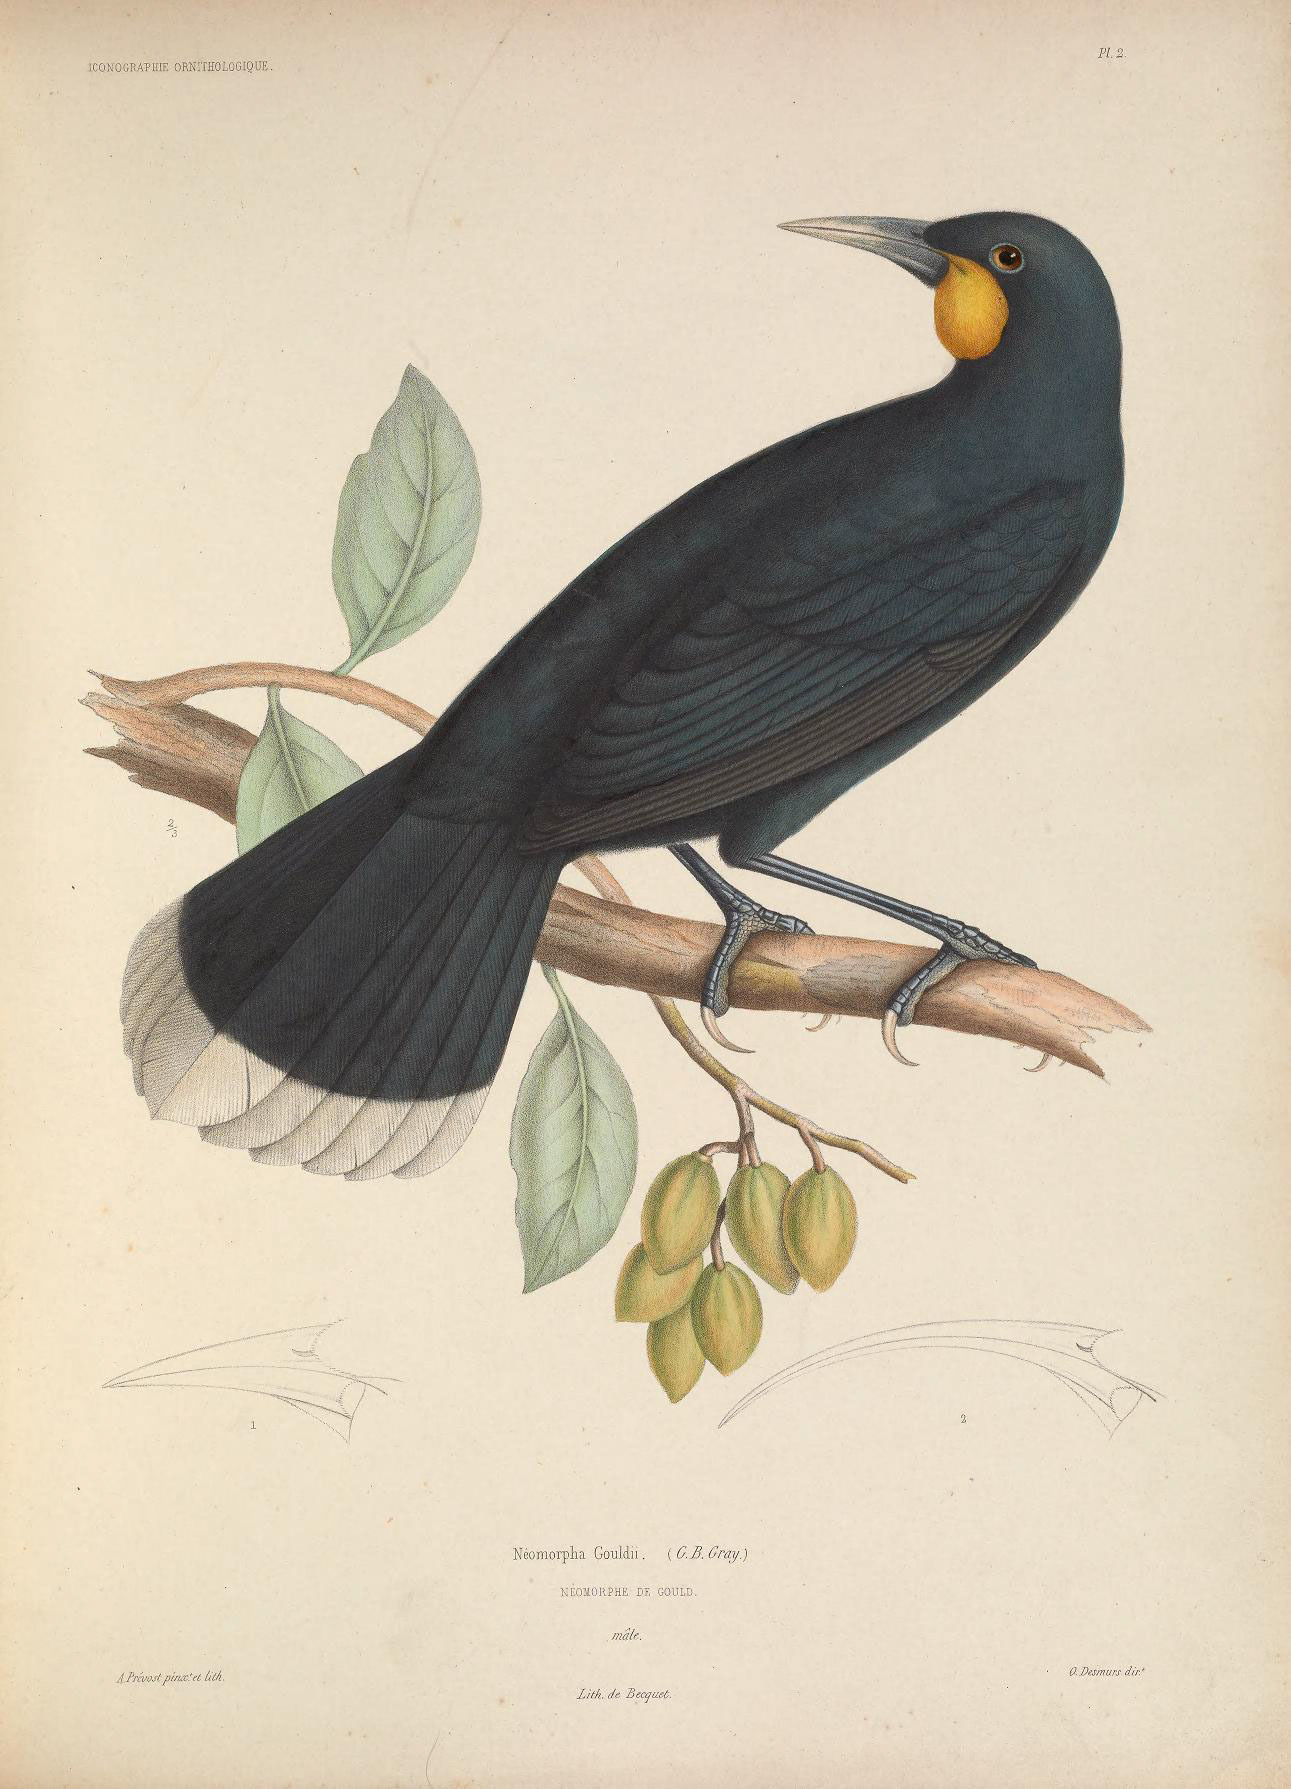 Image of Huia